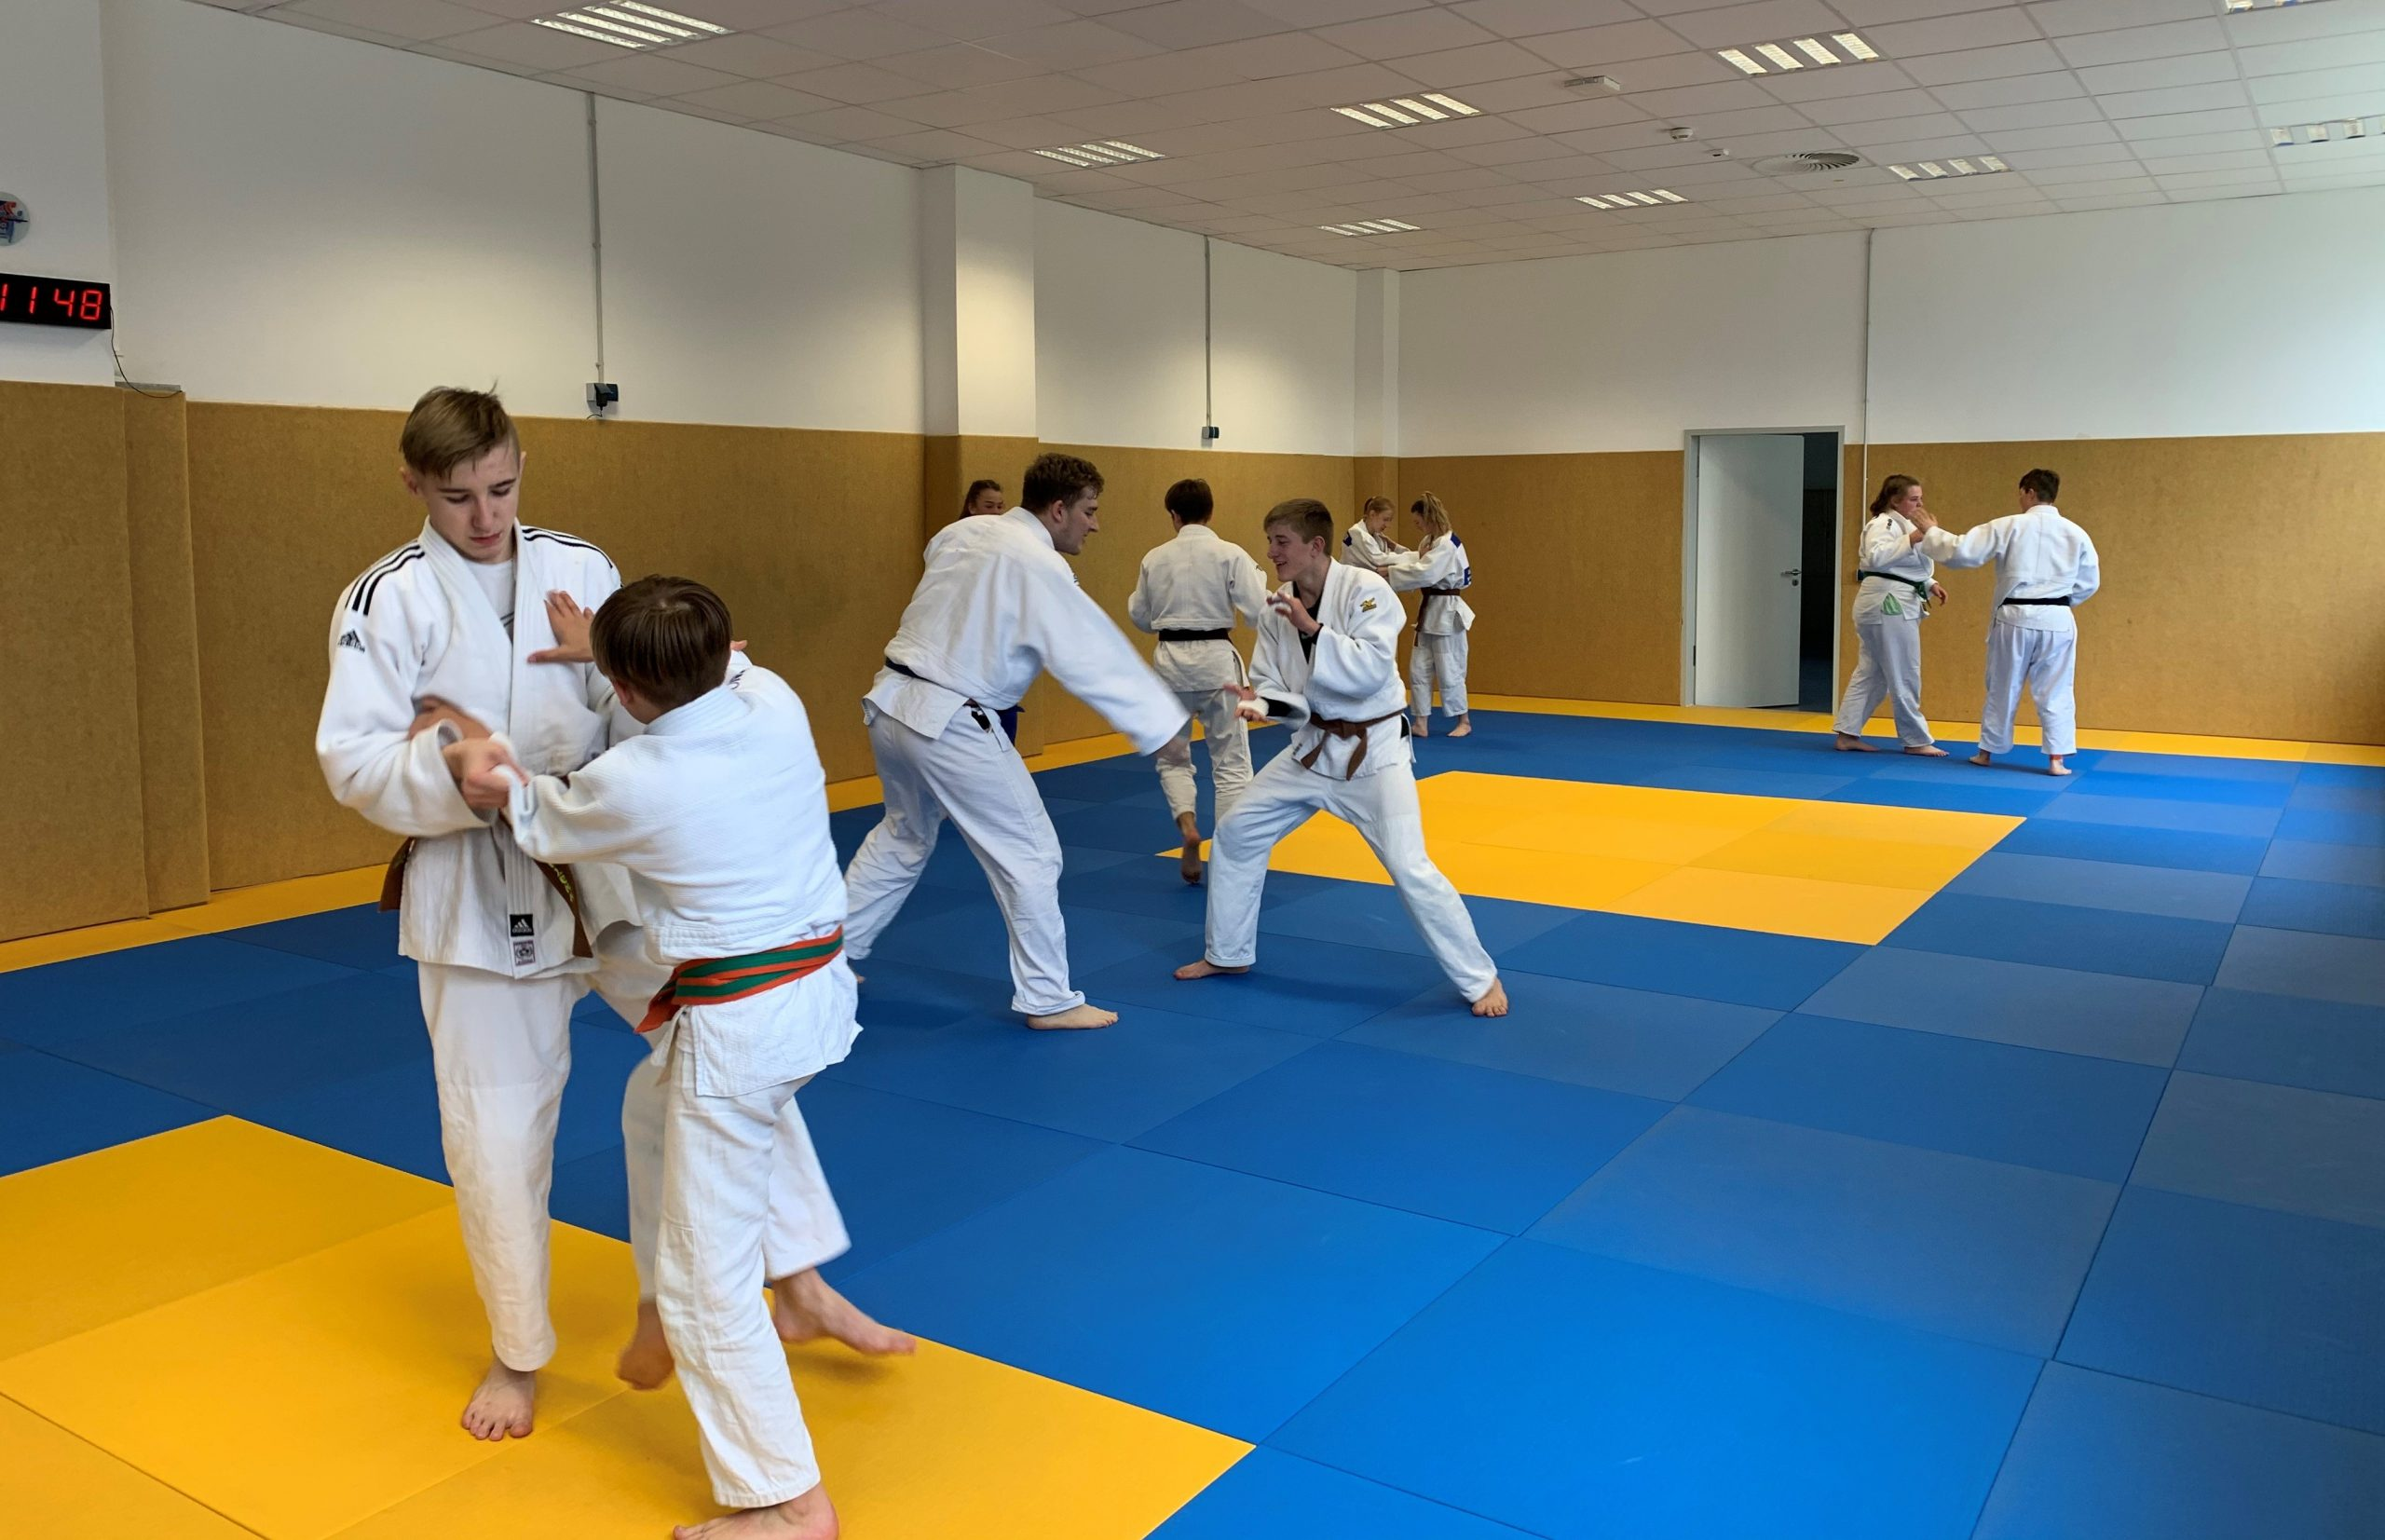 Read more about the article Kadertraining des Bayerischen Judo-Verbands in Bad Aibling